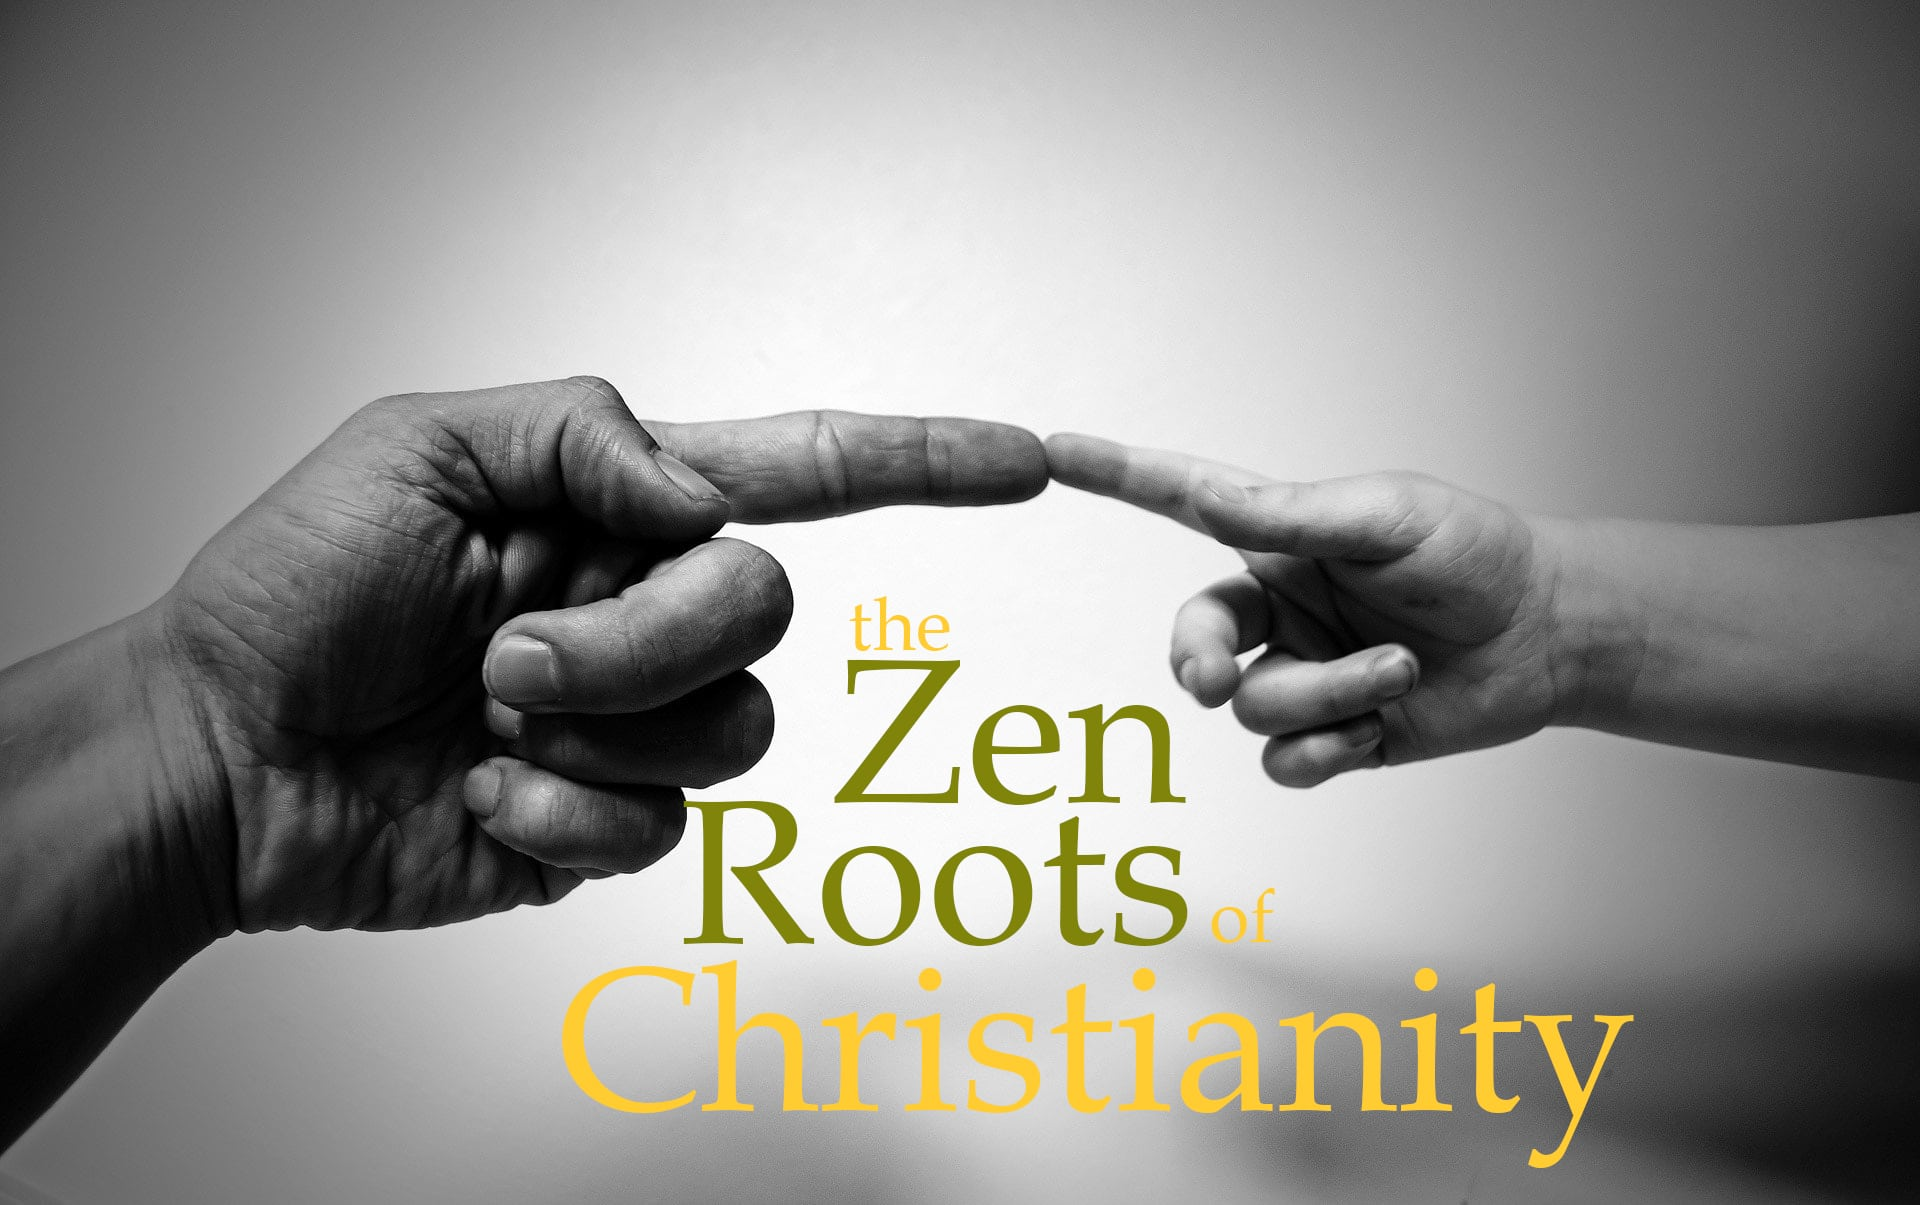 The Zen Roots of Christianity